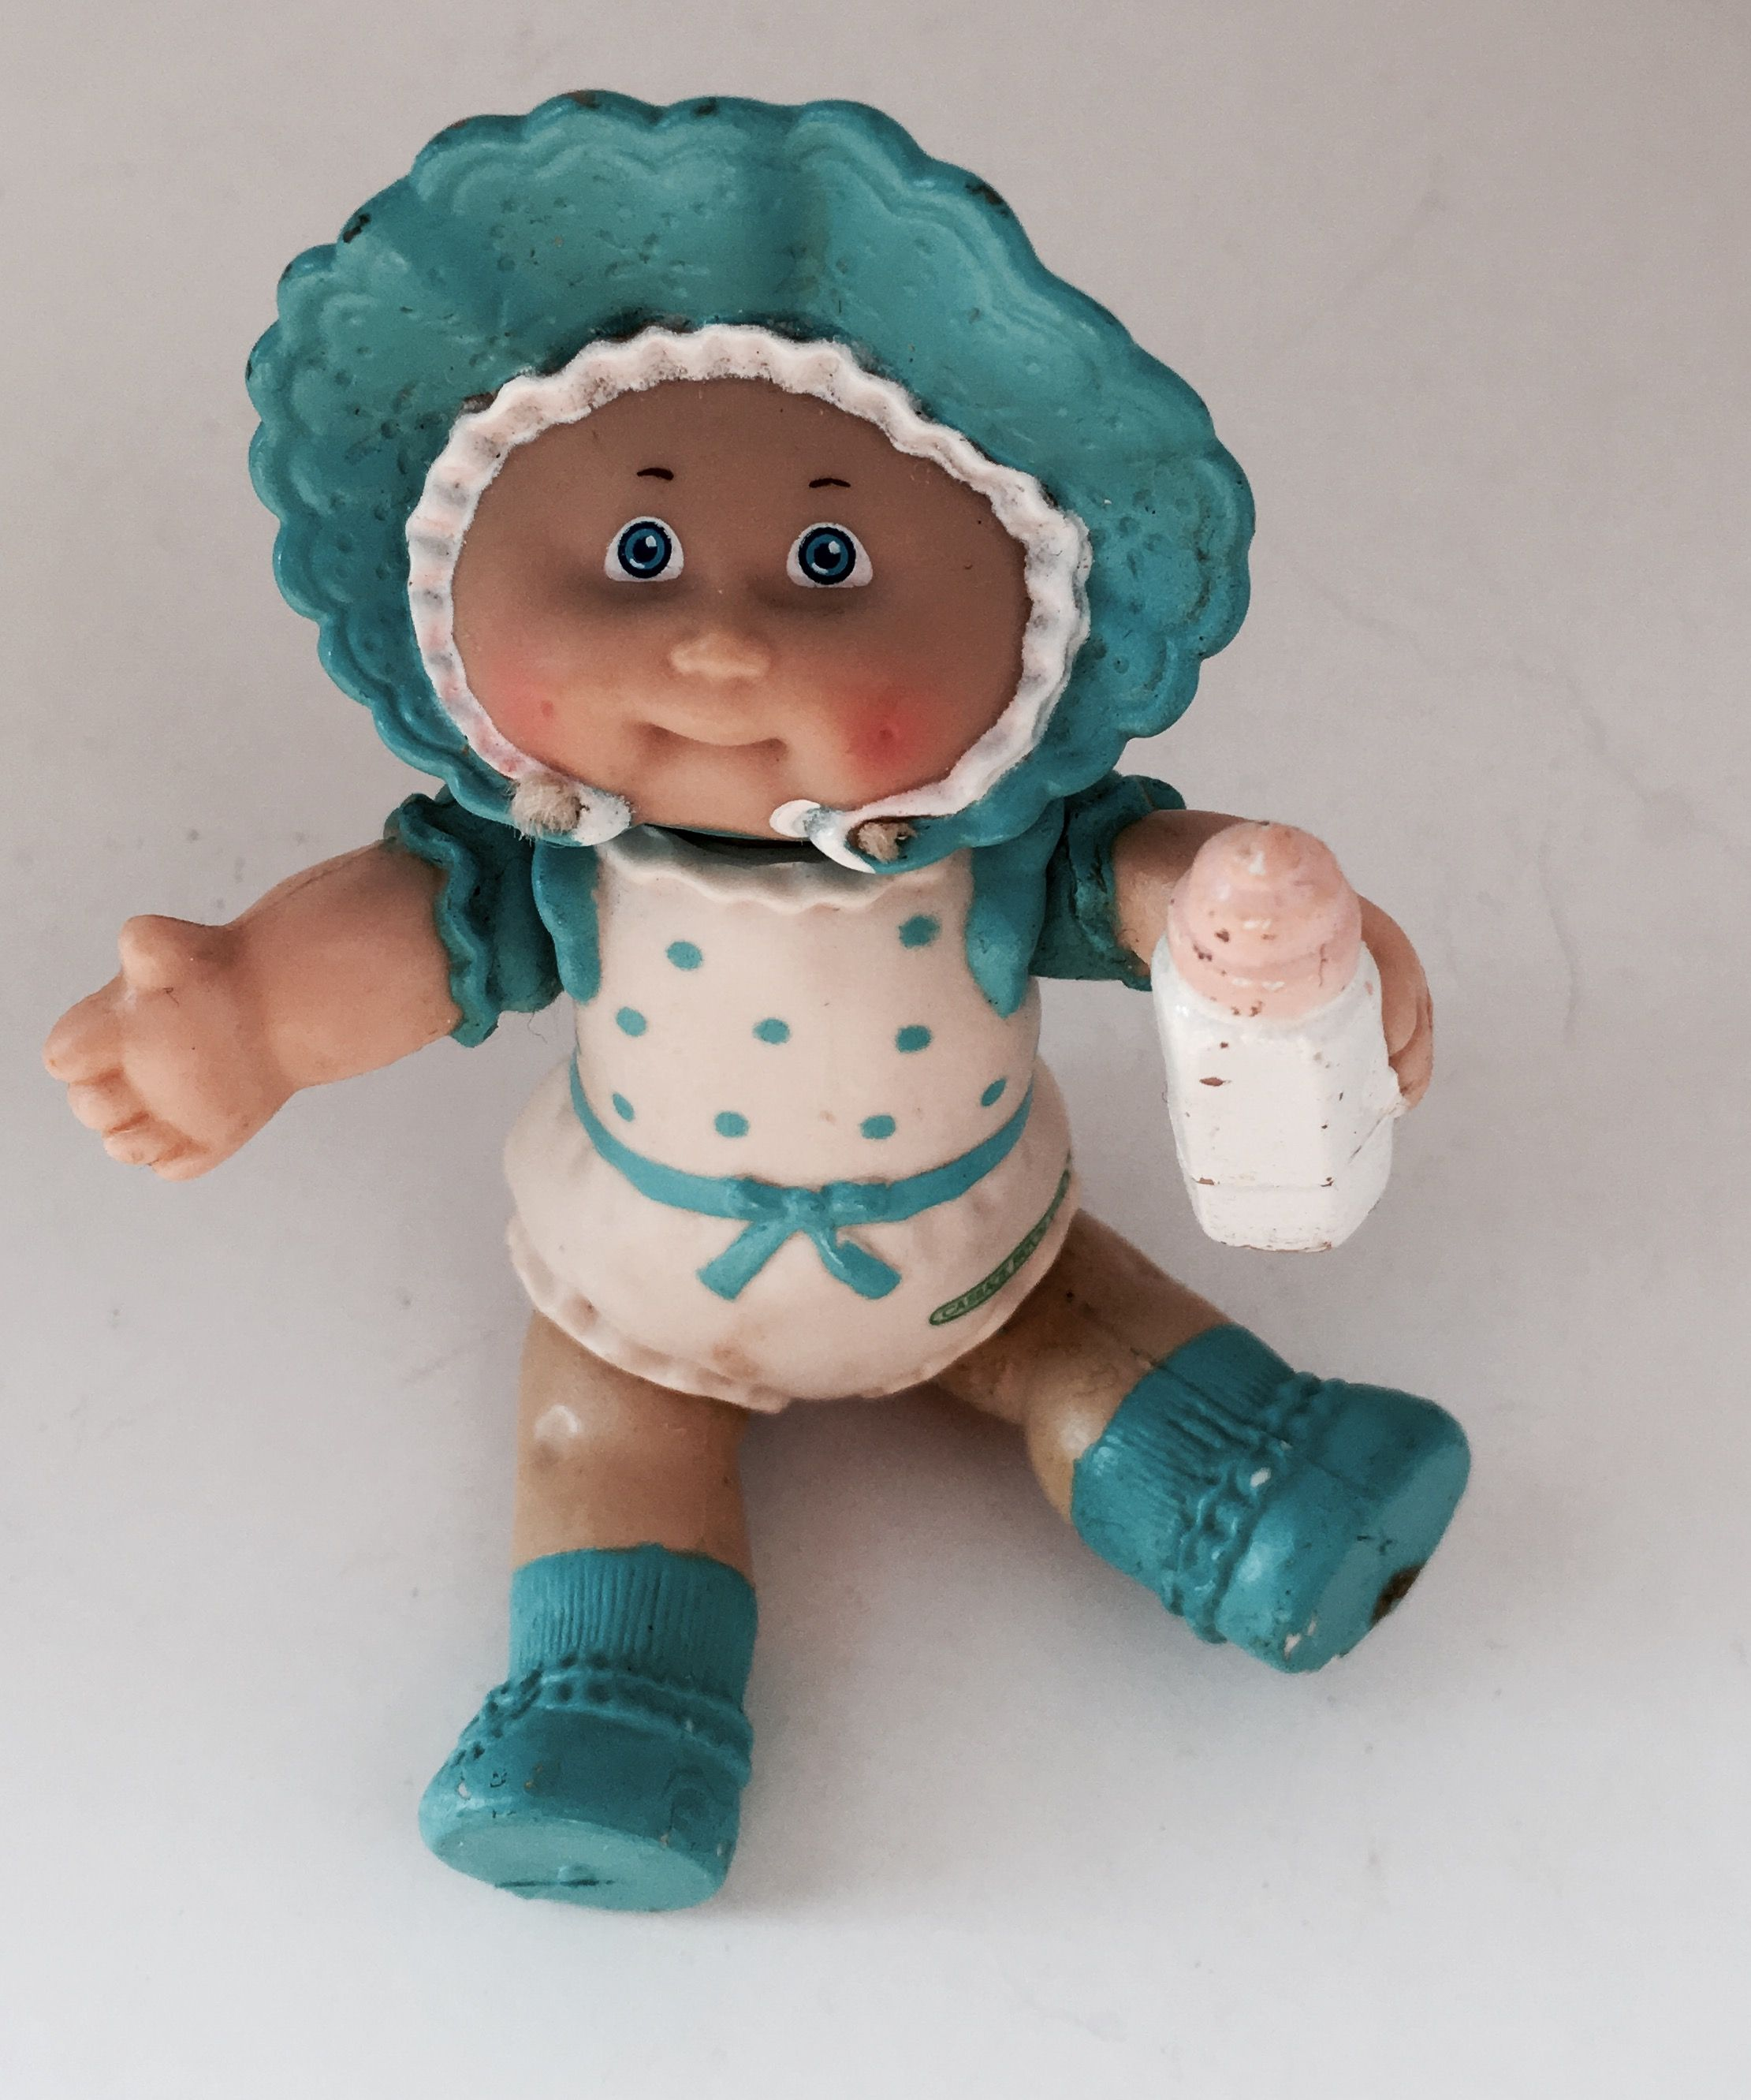 What S In A Name New Additions To The Cpk Name List Cabbage Patch Kids Names Cabbage Patch Babies Cabbage Patch Kids